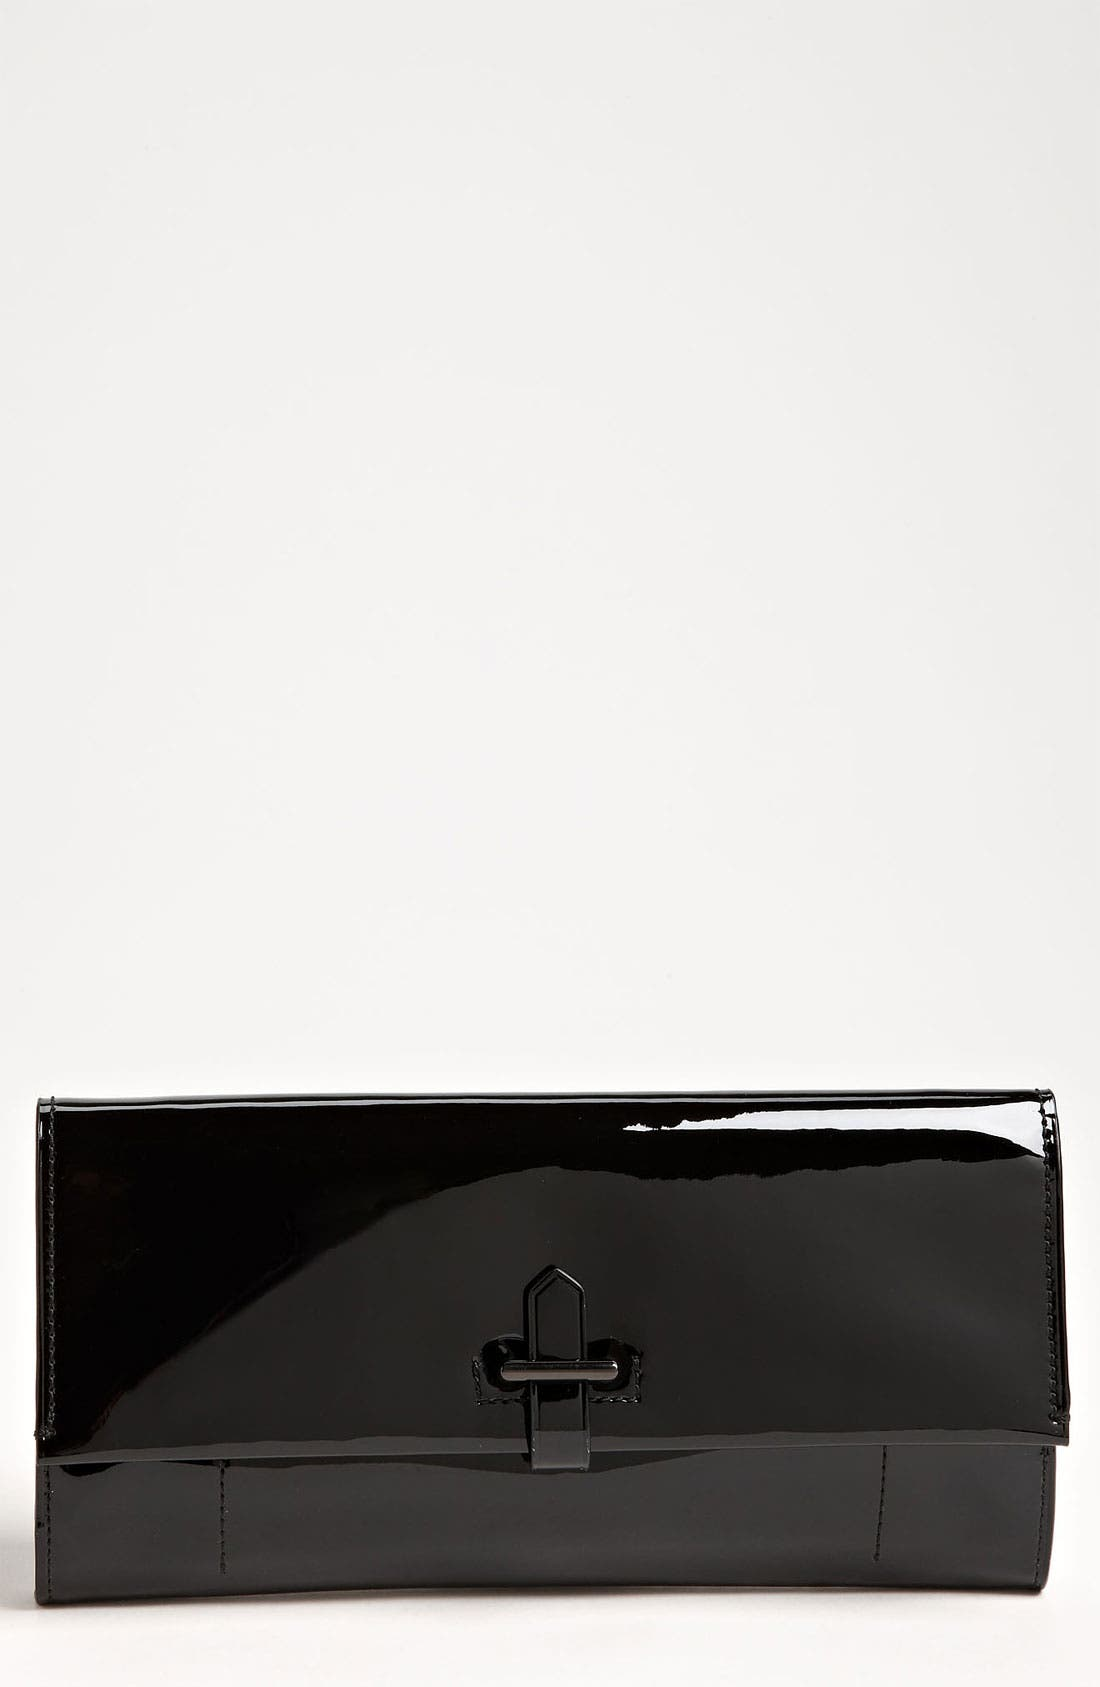 Alternate Image 1 Selected - Reed Krakoff 'Standard' Patent Leather Clutch